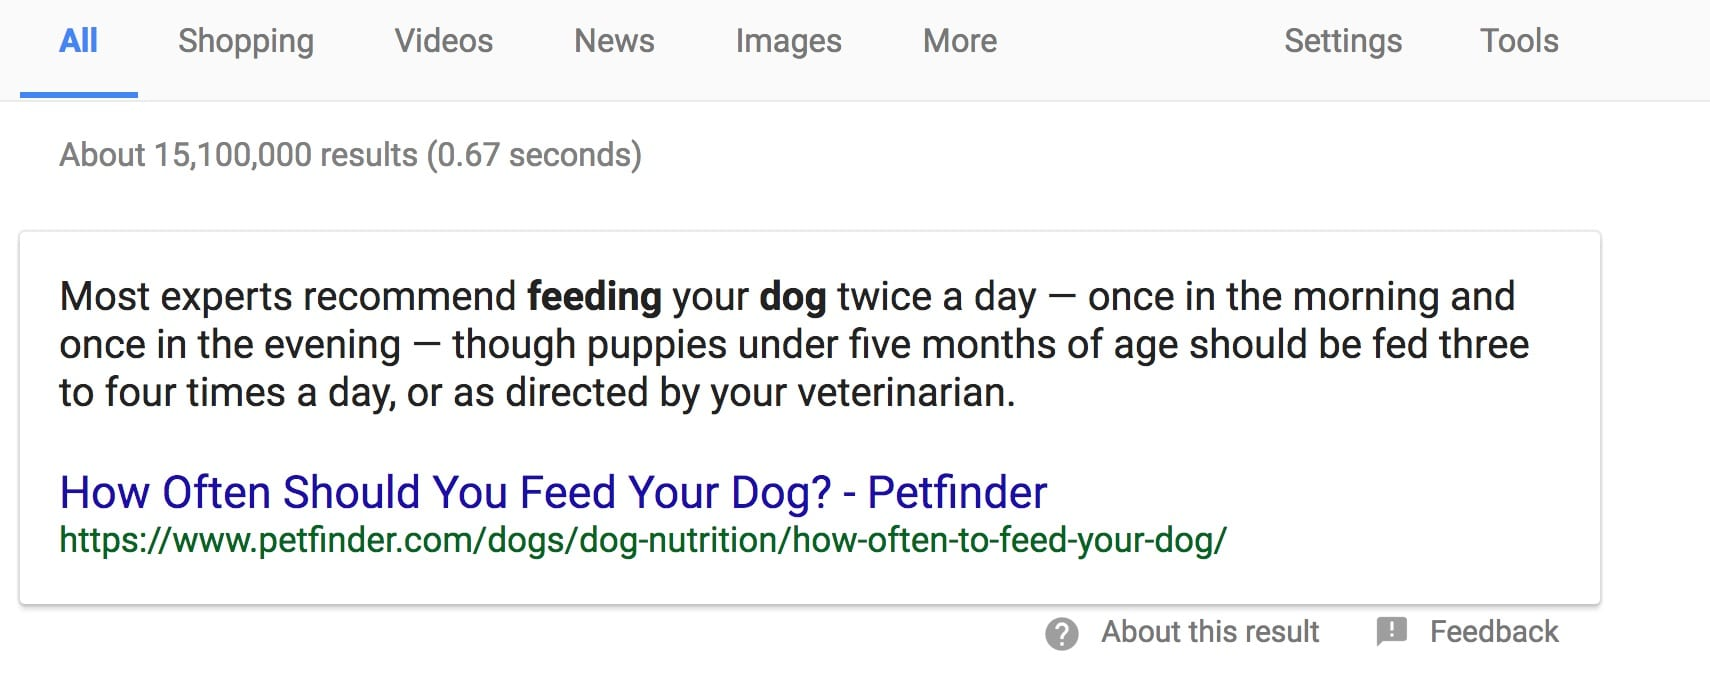 Rich Snippet shows the answer to how often should you feed your dog.